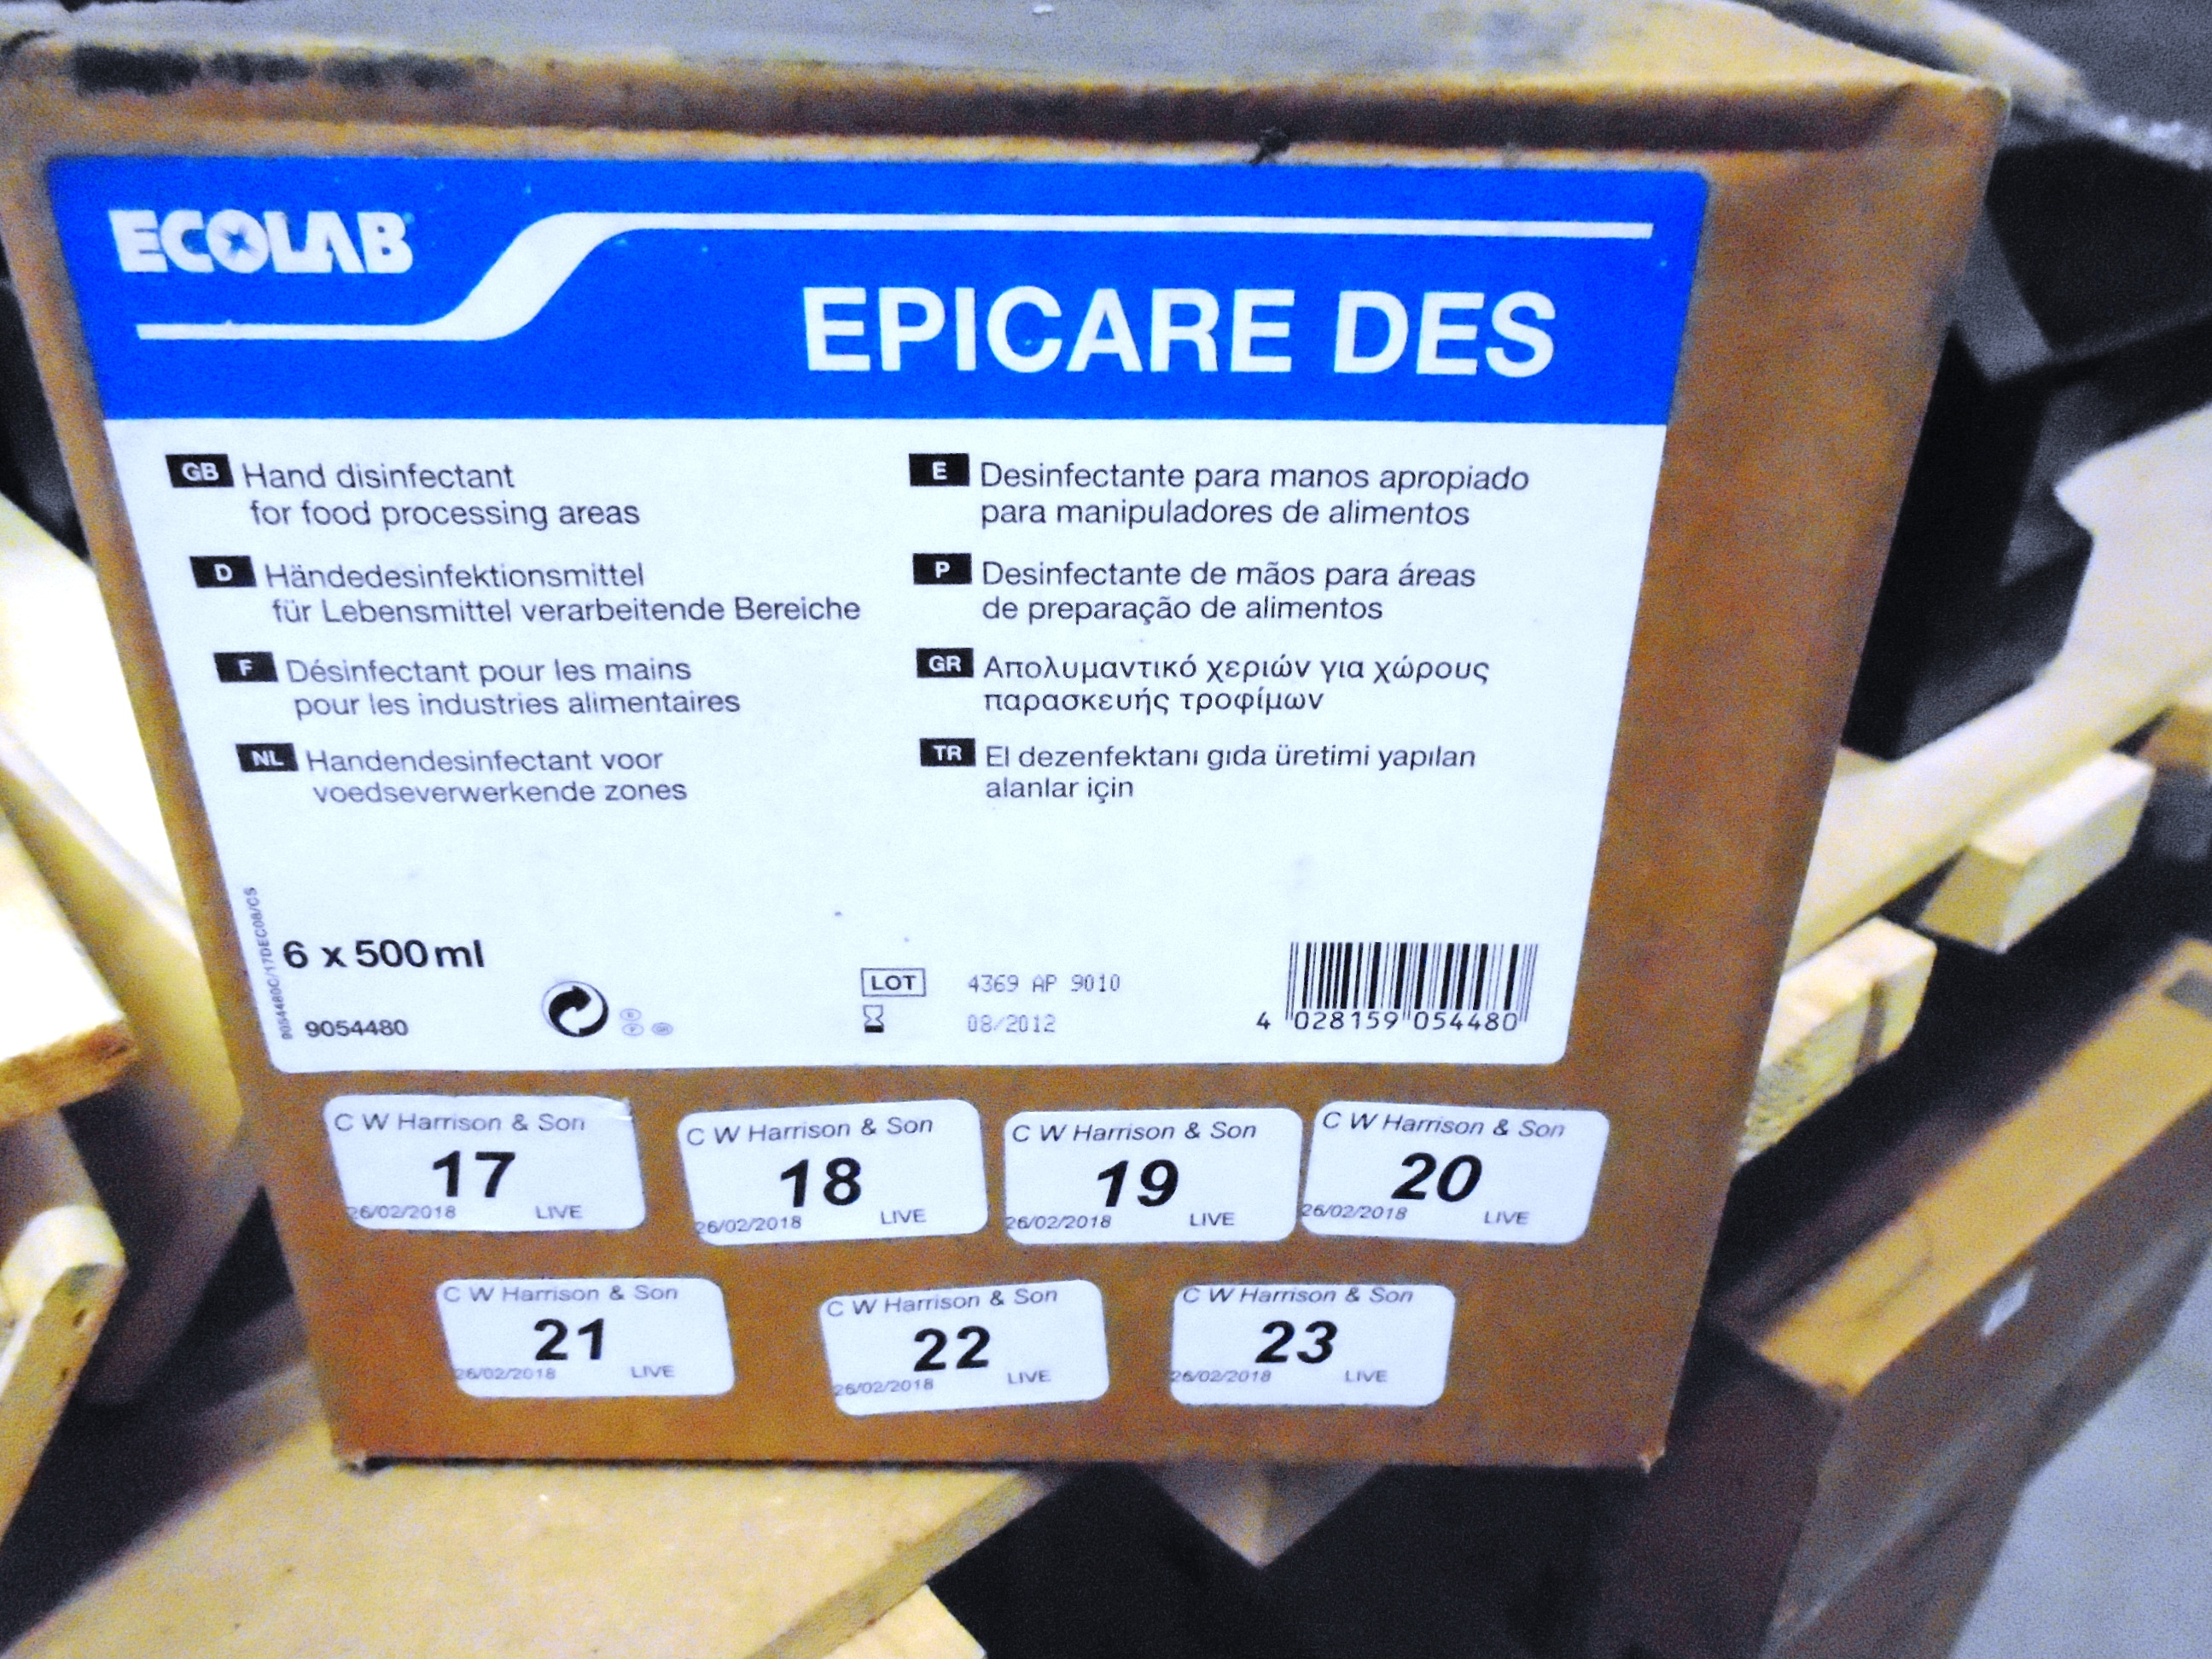 Lot 23 - 240 x Ecolab hand disinfectant for food processing areas (40 x outer boxes)